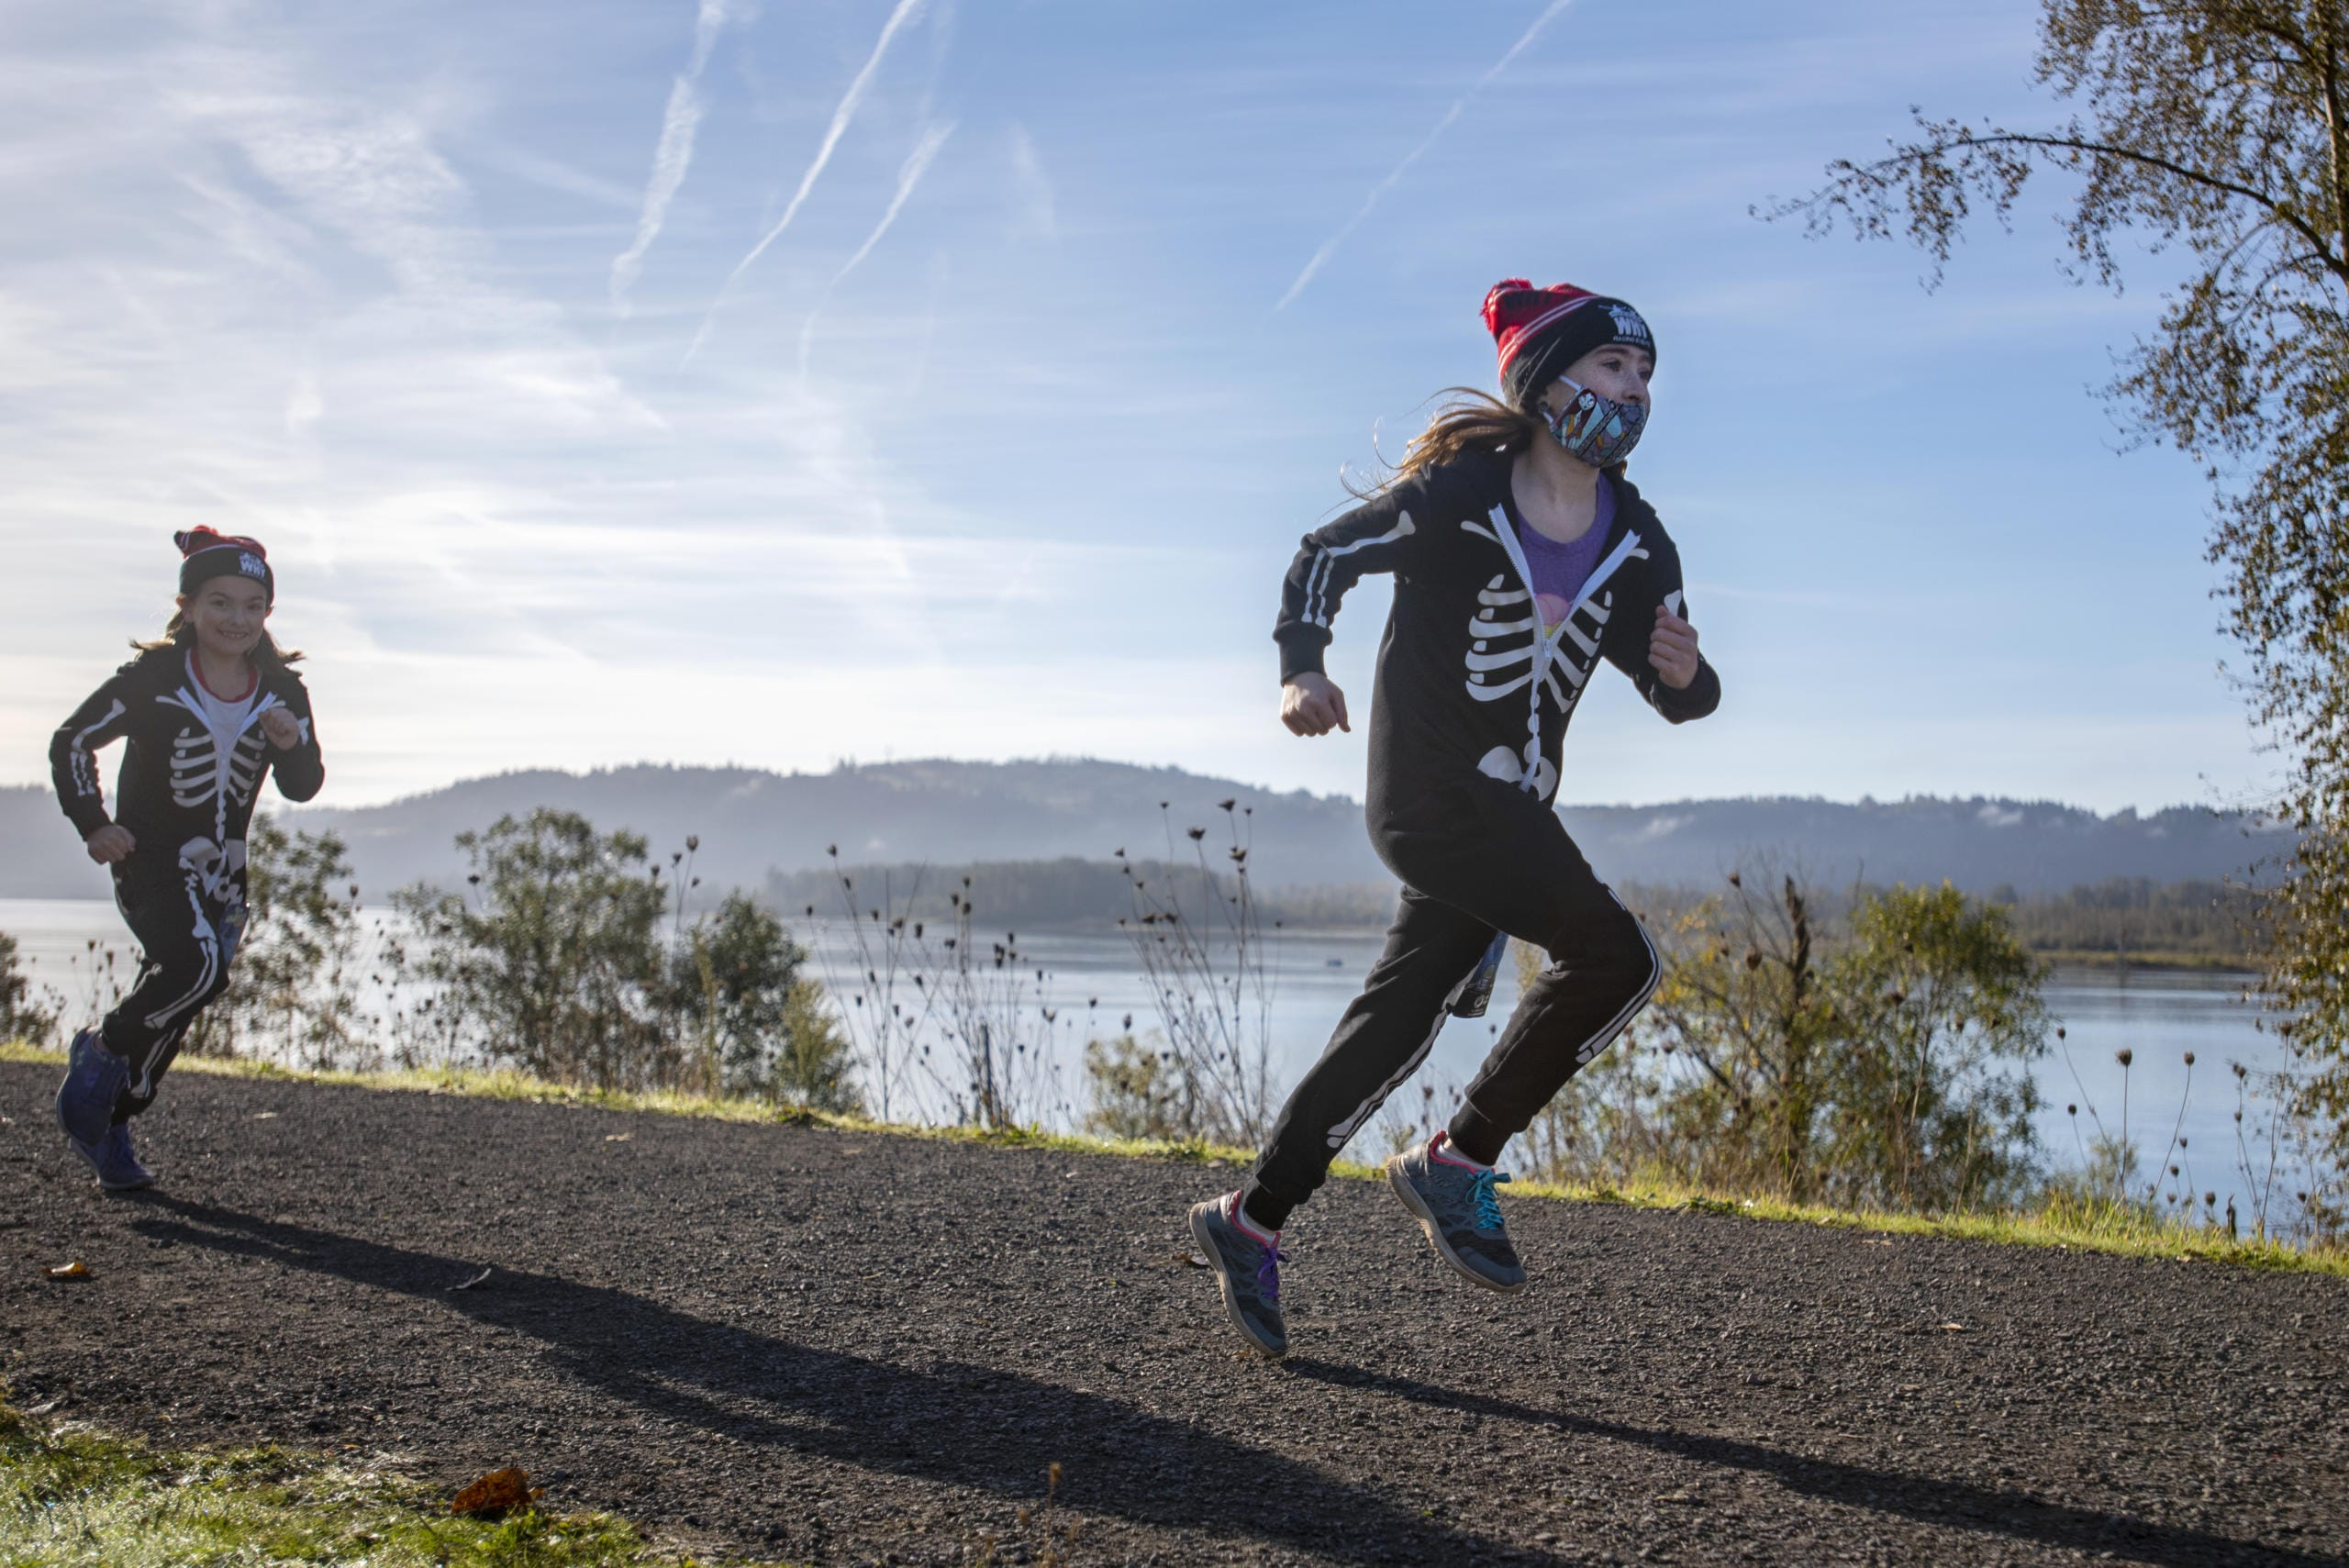 Eight-year-old Sophia Campbell, left, runs behind Emily Corsen, 10, in WhyRacing's Scary Run on Saturday morning, October 31, 2020, in Washougal.